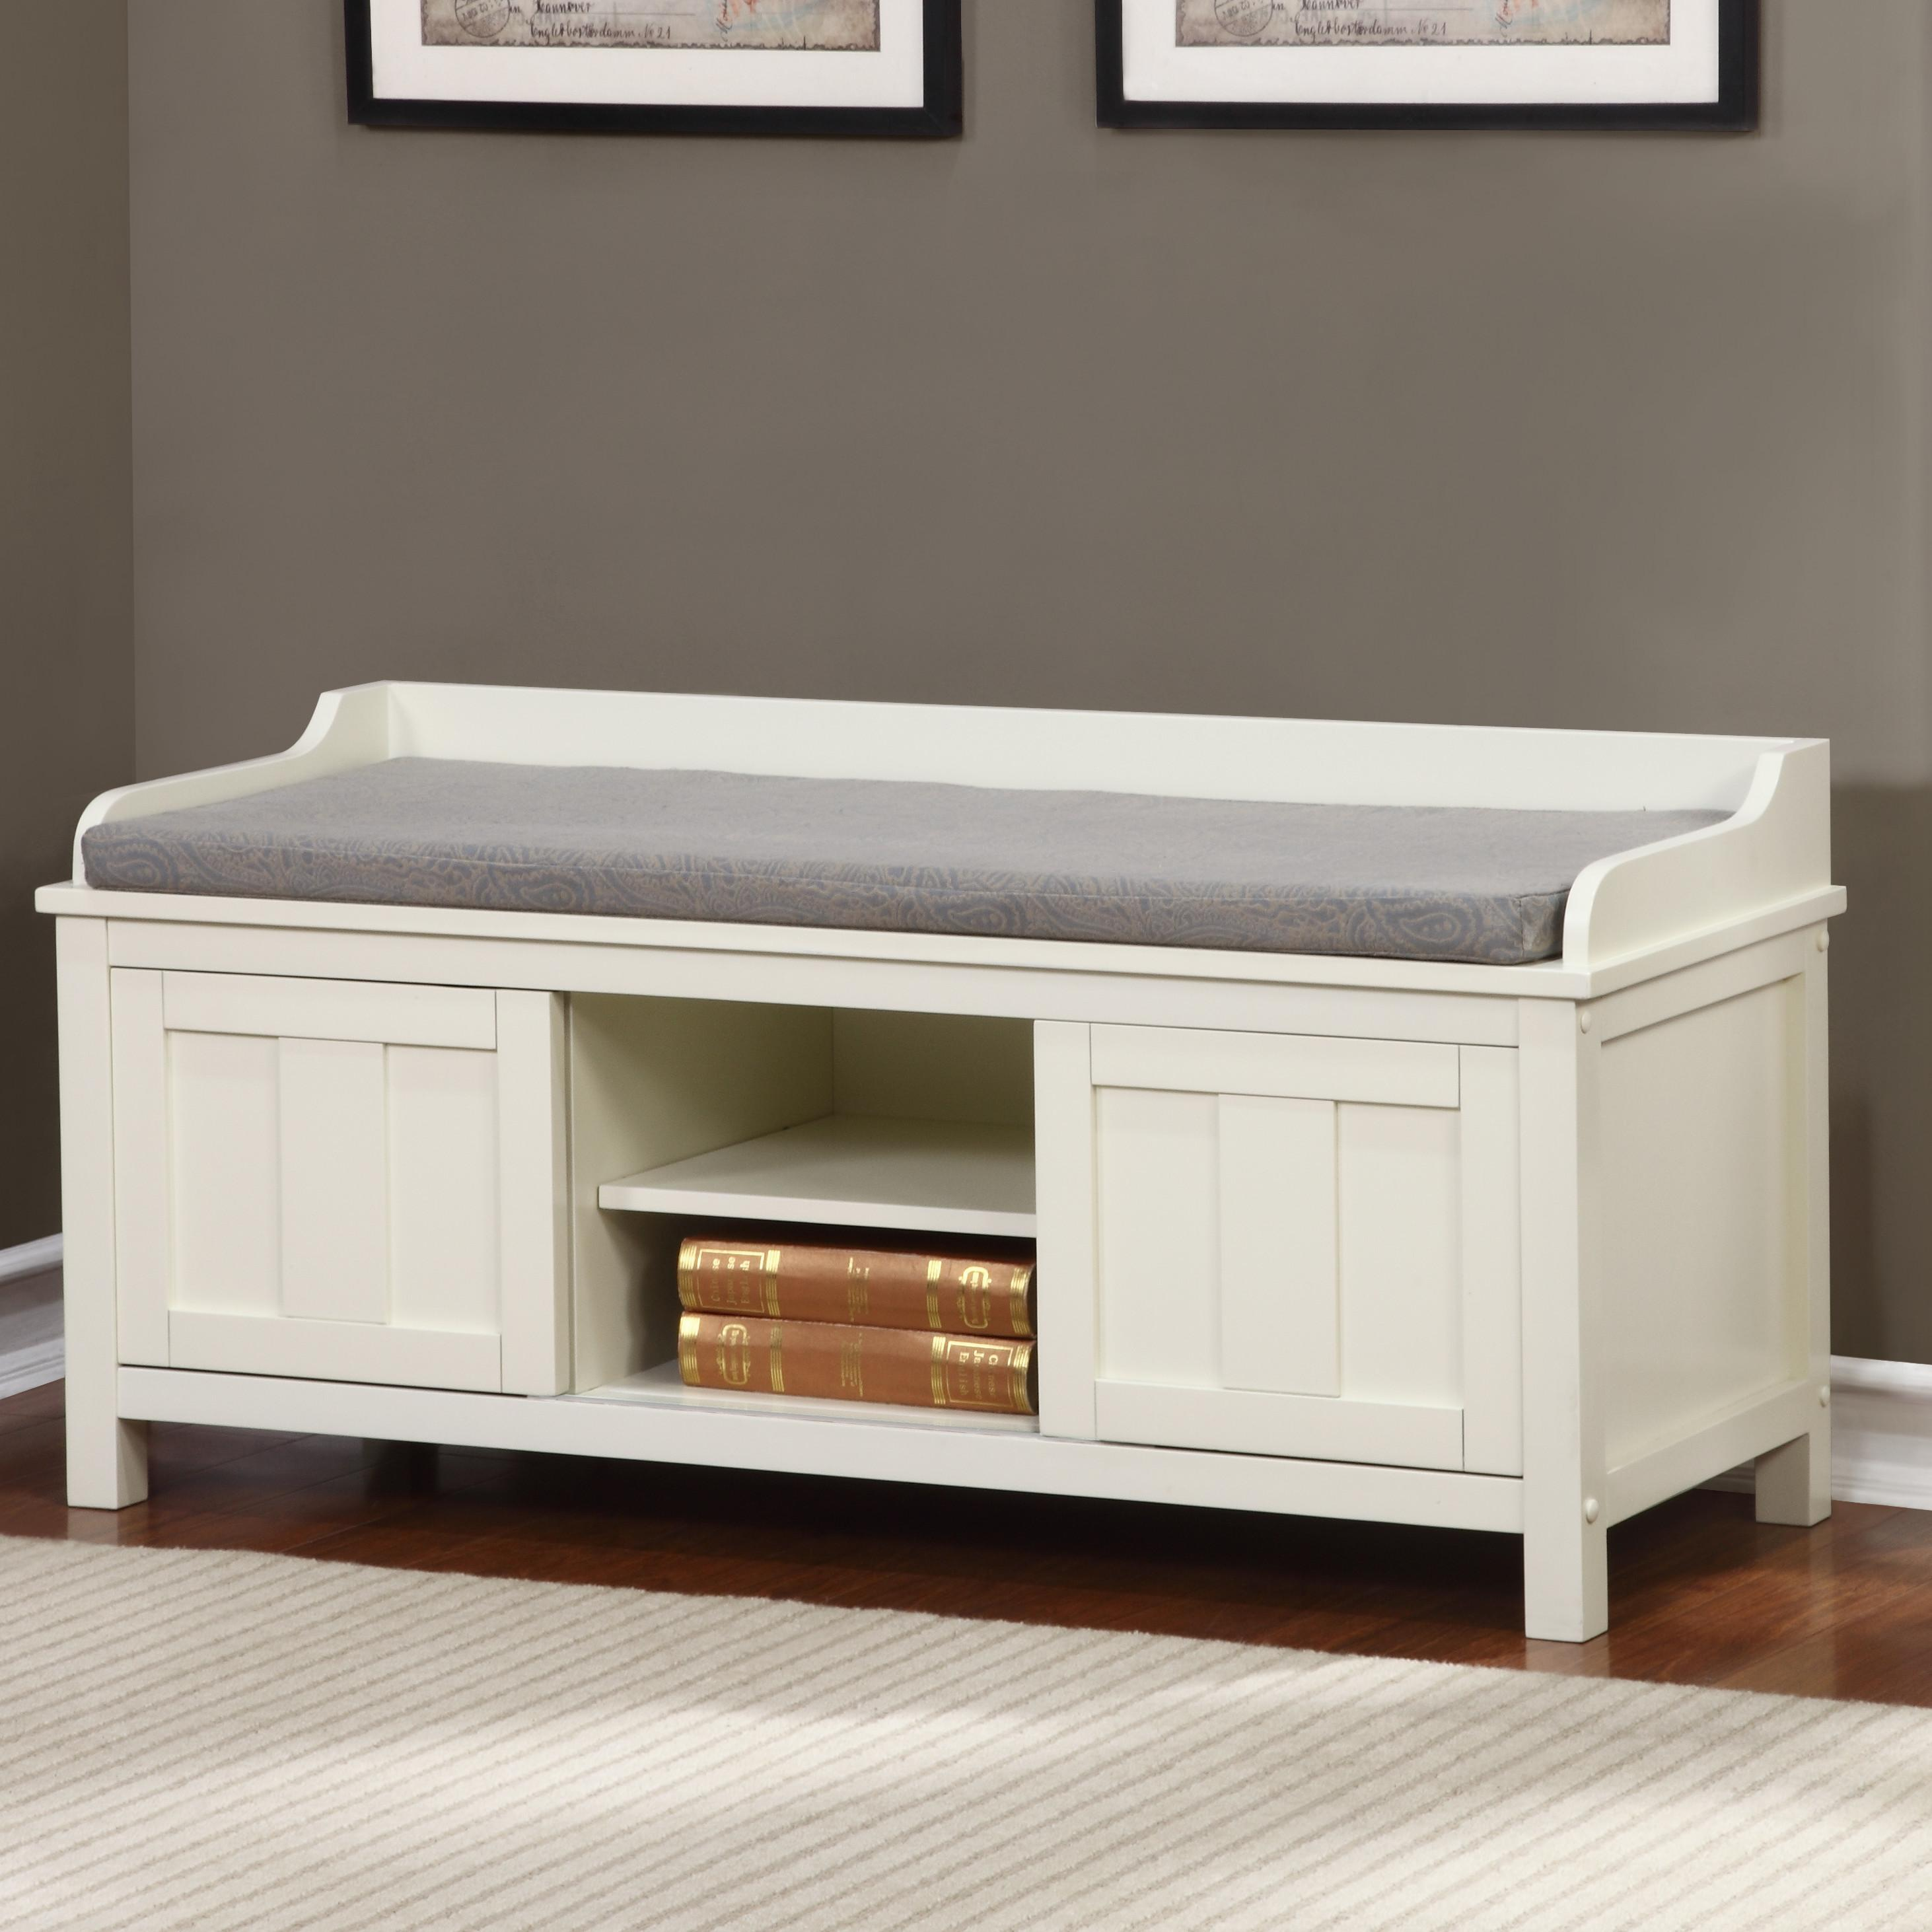 Very Awesome Entryway Benches Storage That Offer Real Pleasure Photo Examples Decoratorist